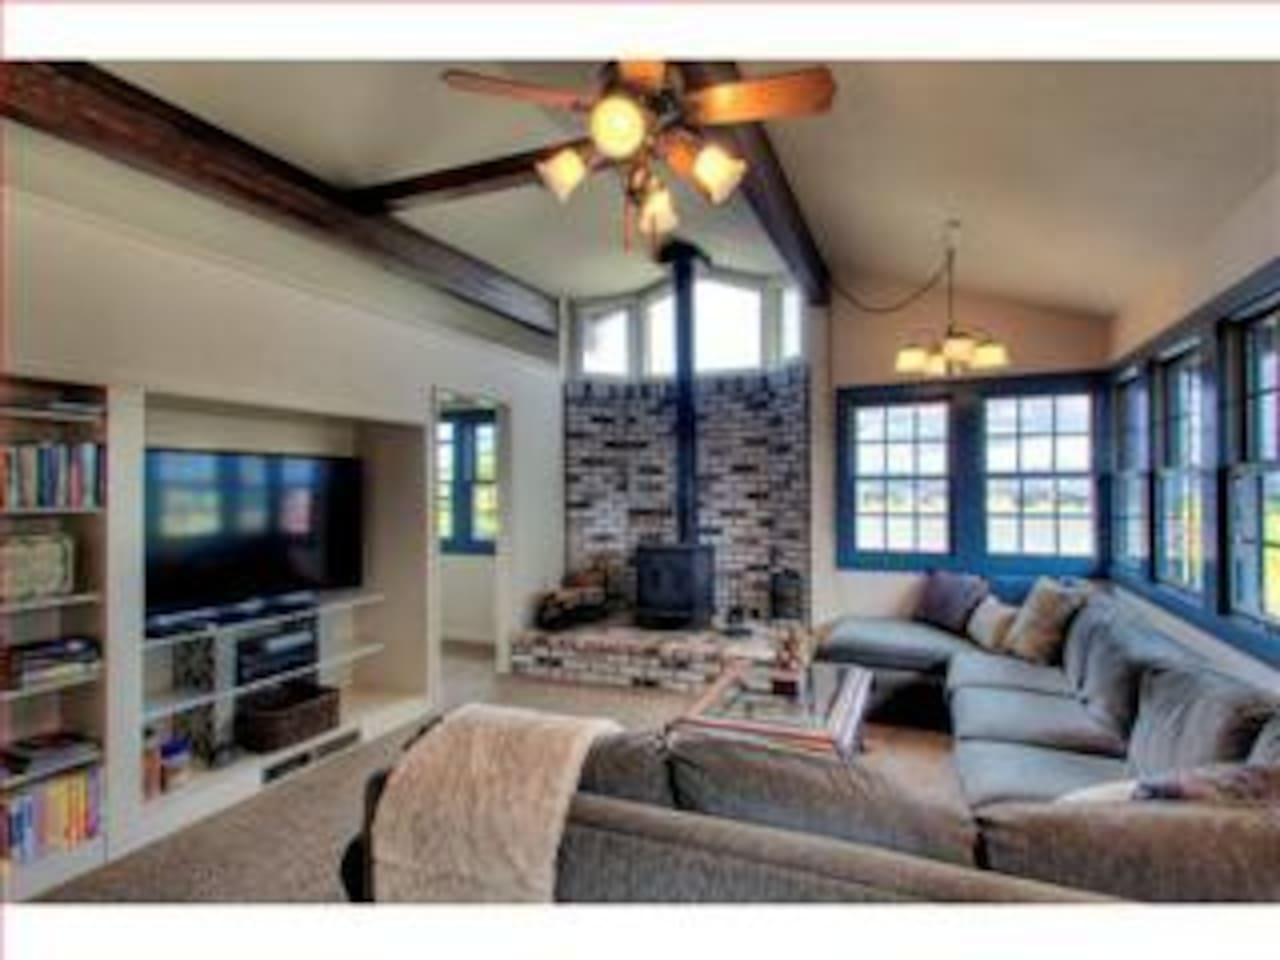 Spacious Living Room with Stove, Cable TV and Amazing views